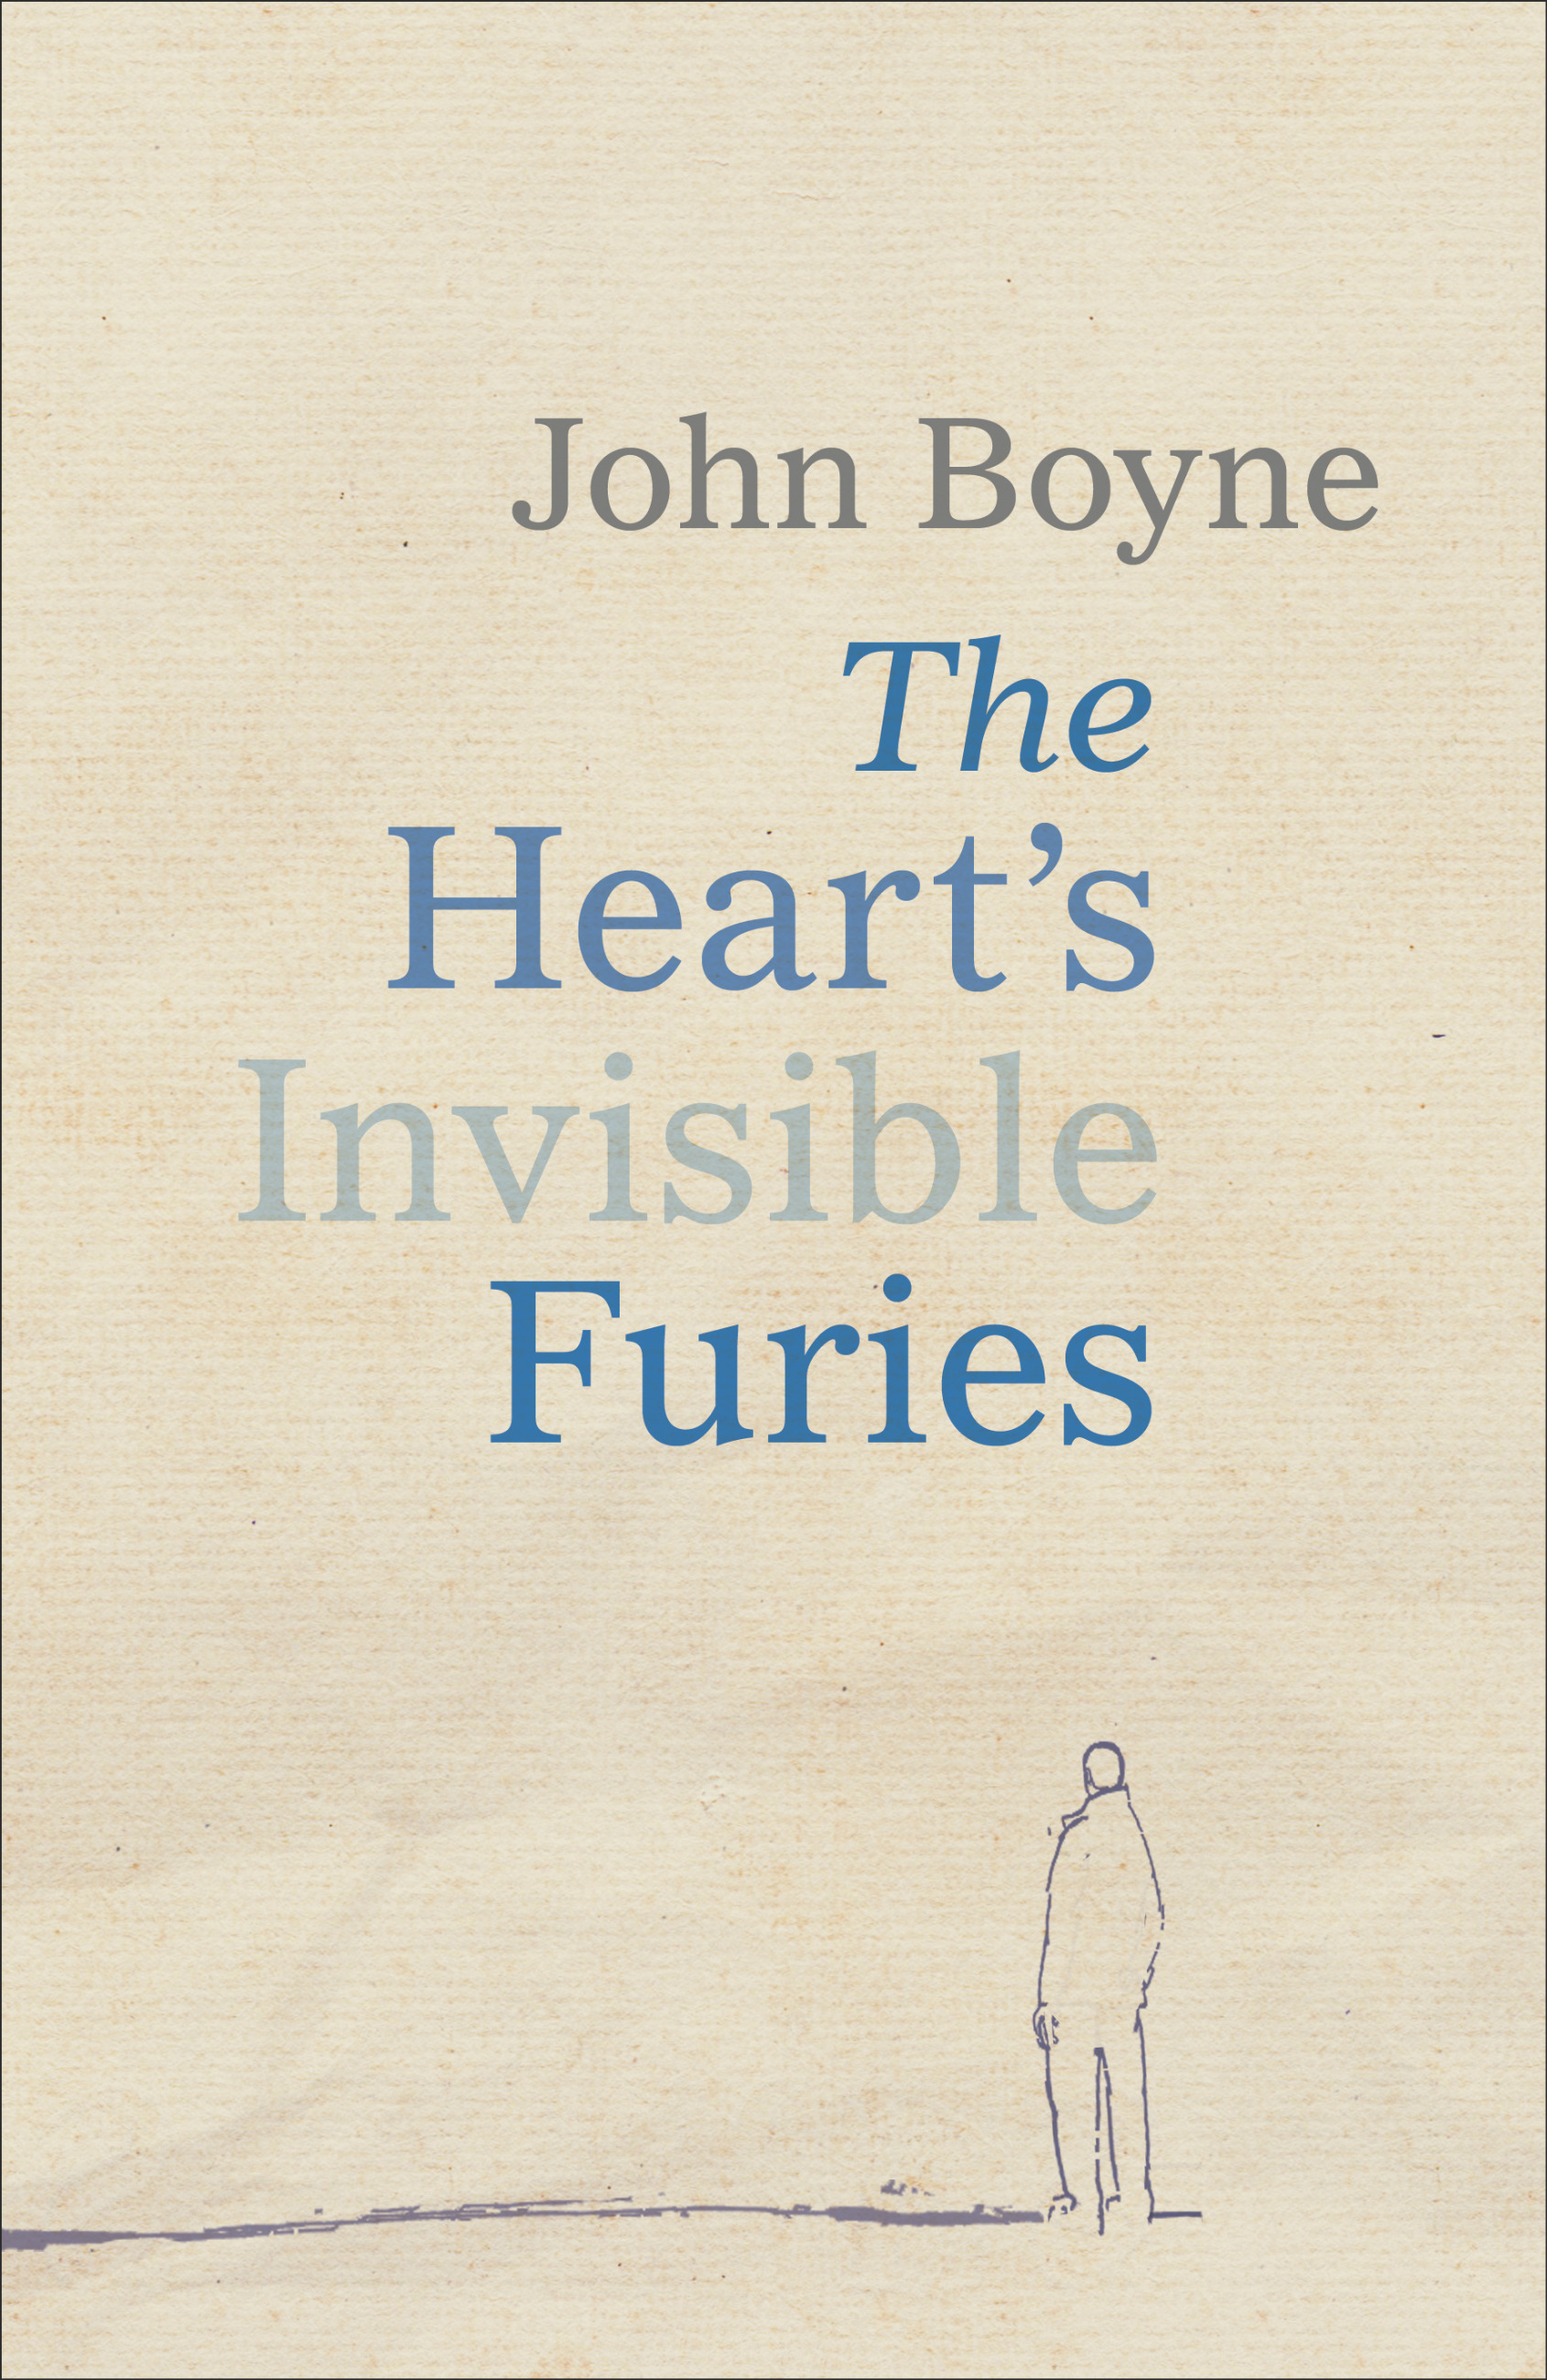 The Heart's Invisible Furies - bibliophile review